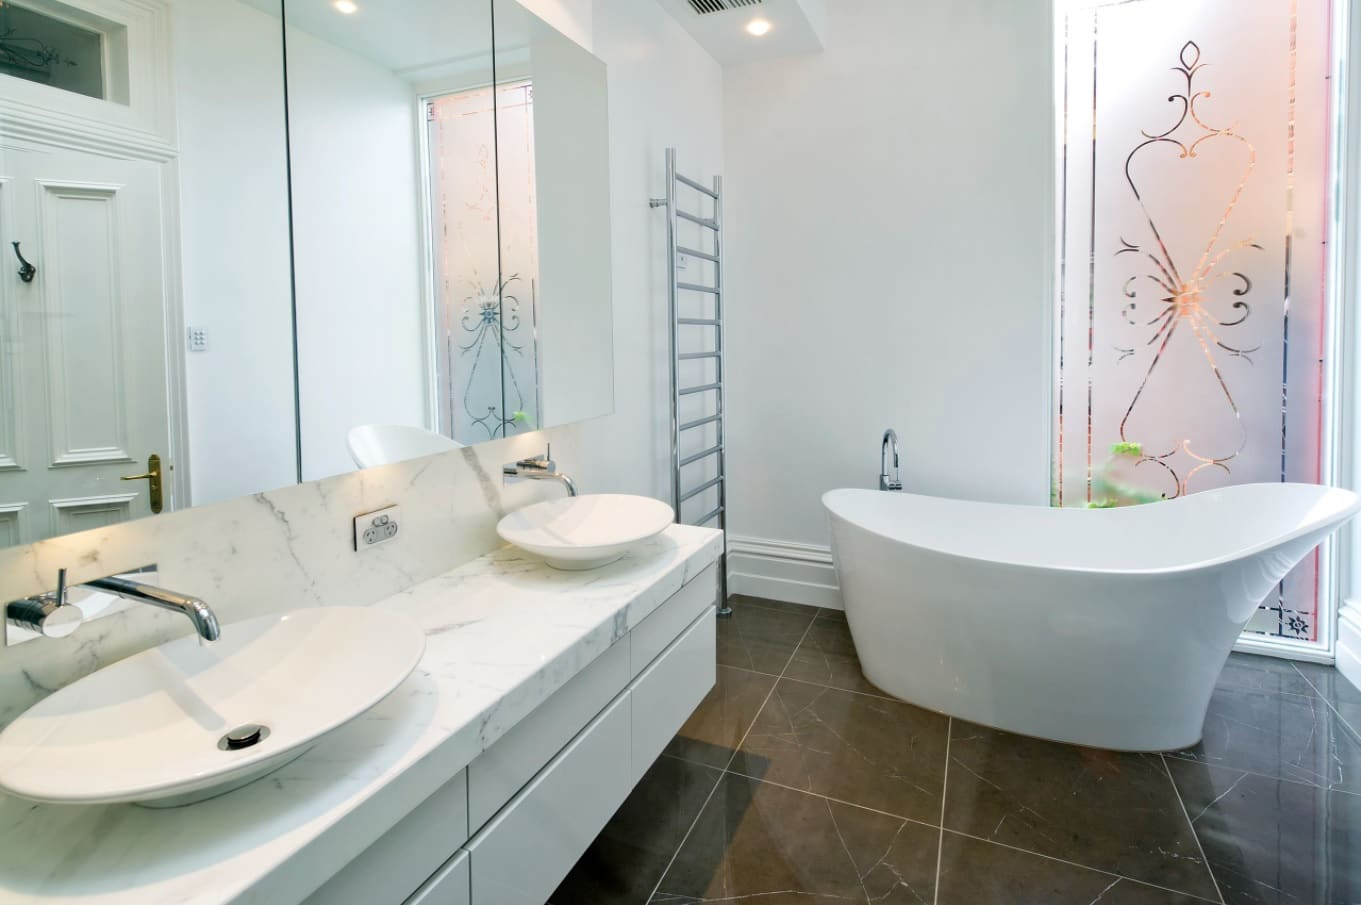 White walls and furniture for contemporary designed bathroom